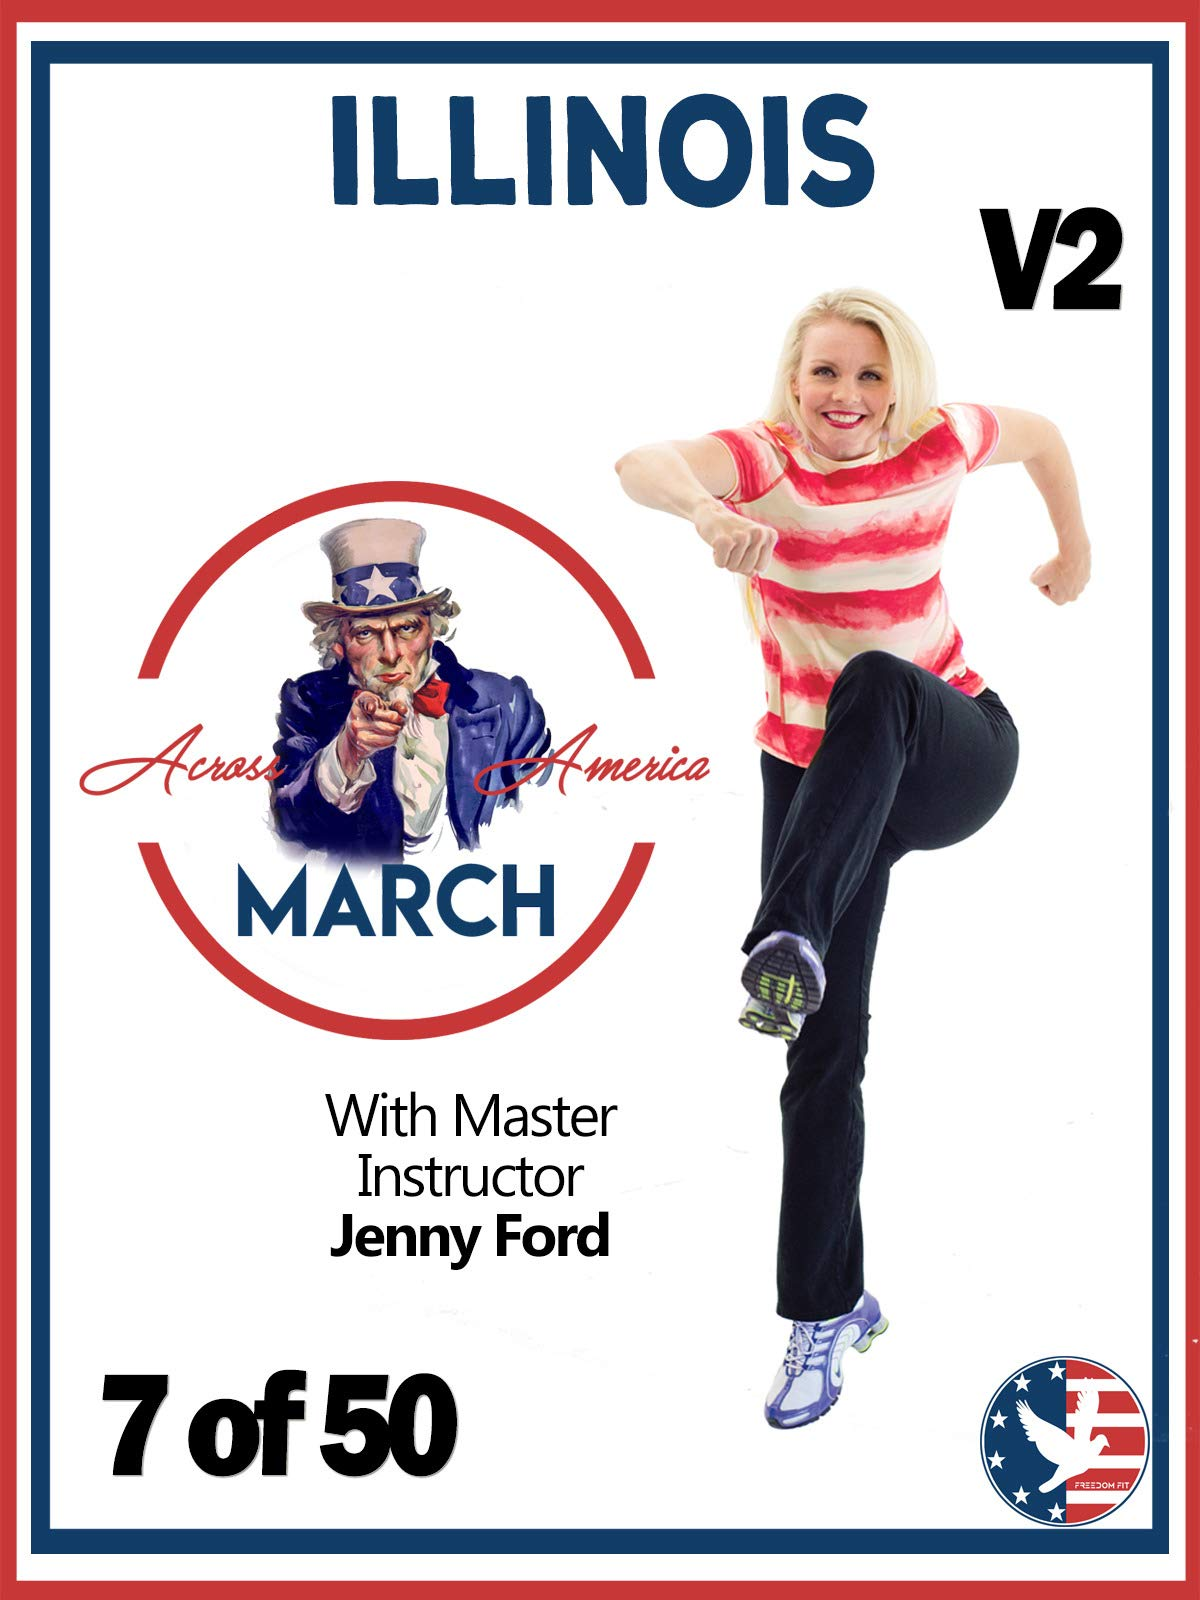 7 of 50 Illinois March Across America with Jenny Ford